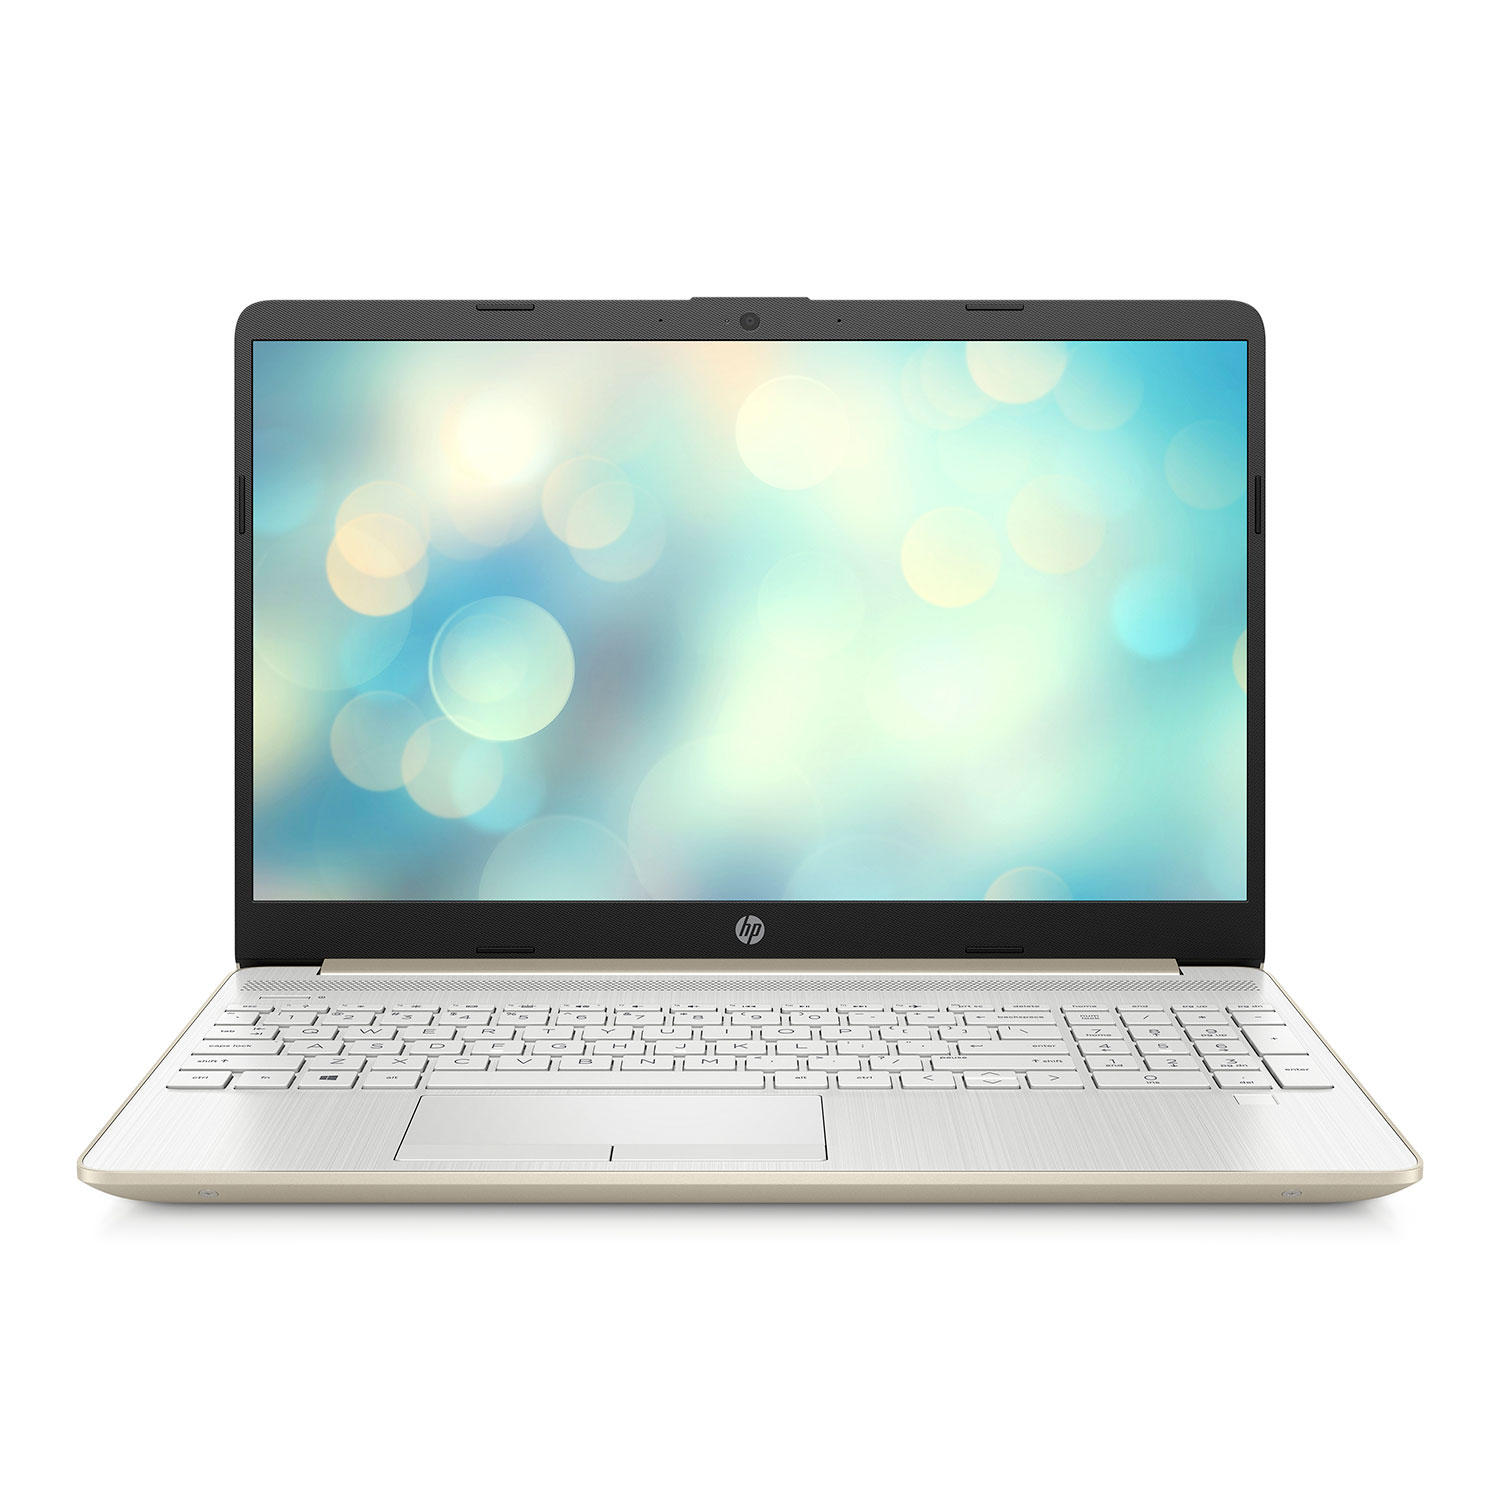 "HP 15-dw2632cl 15.6"" HD Laptop (i3-1005G1 / 4GB / 256GB SSD)"